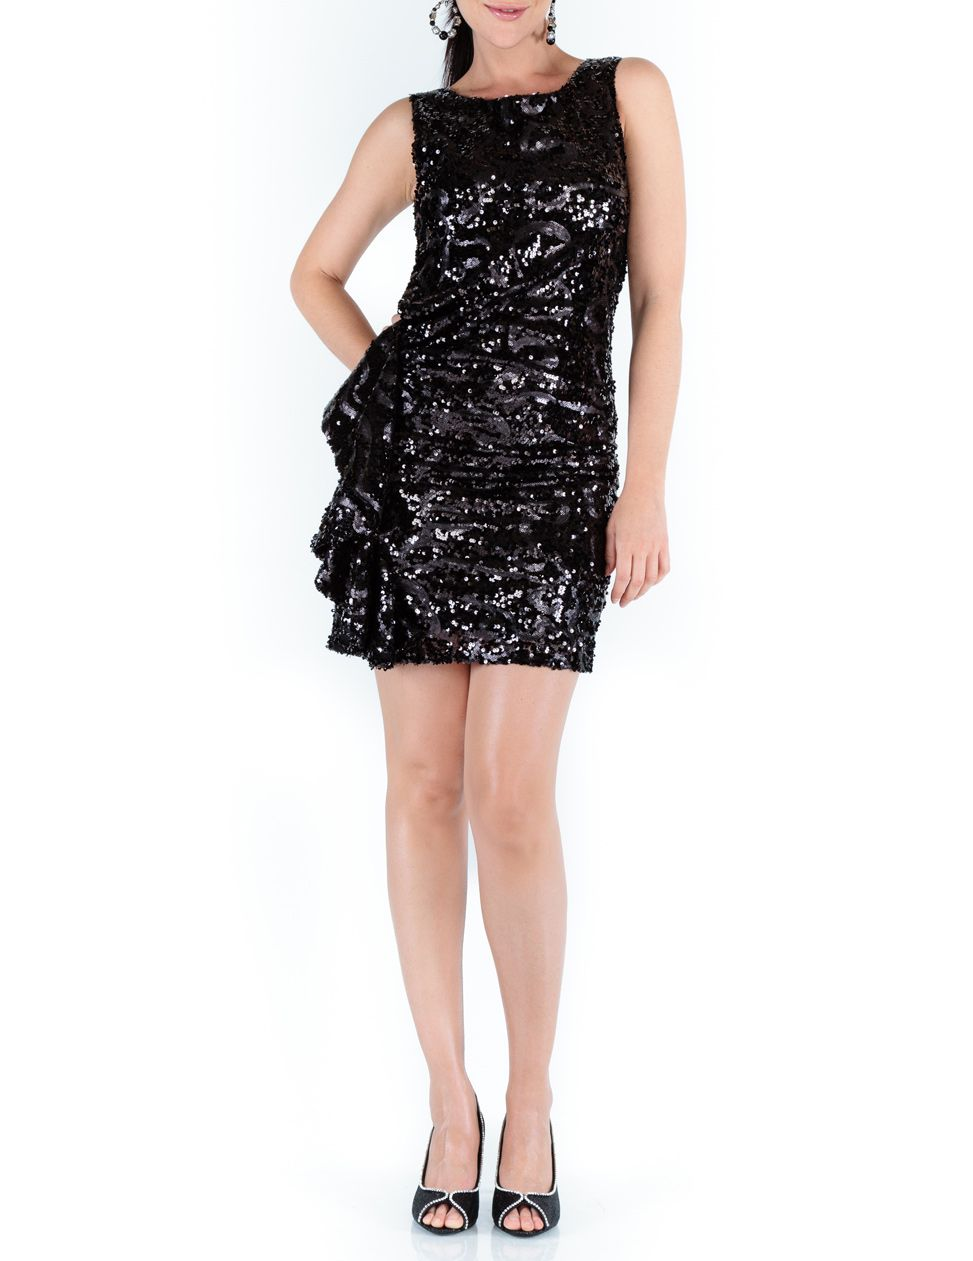 Tabara sequin short dress